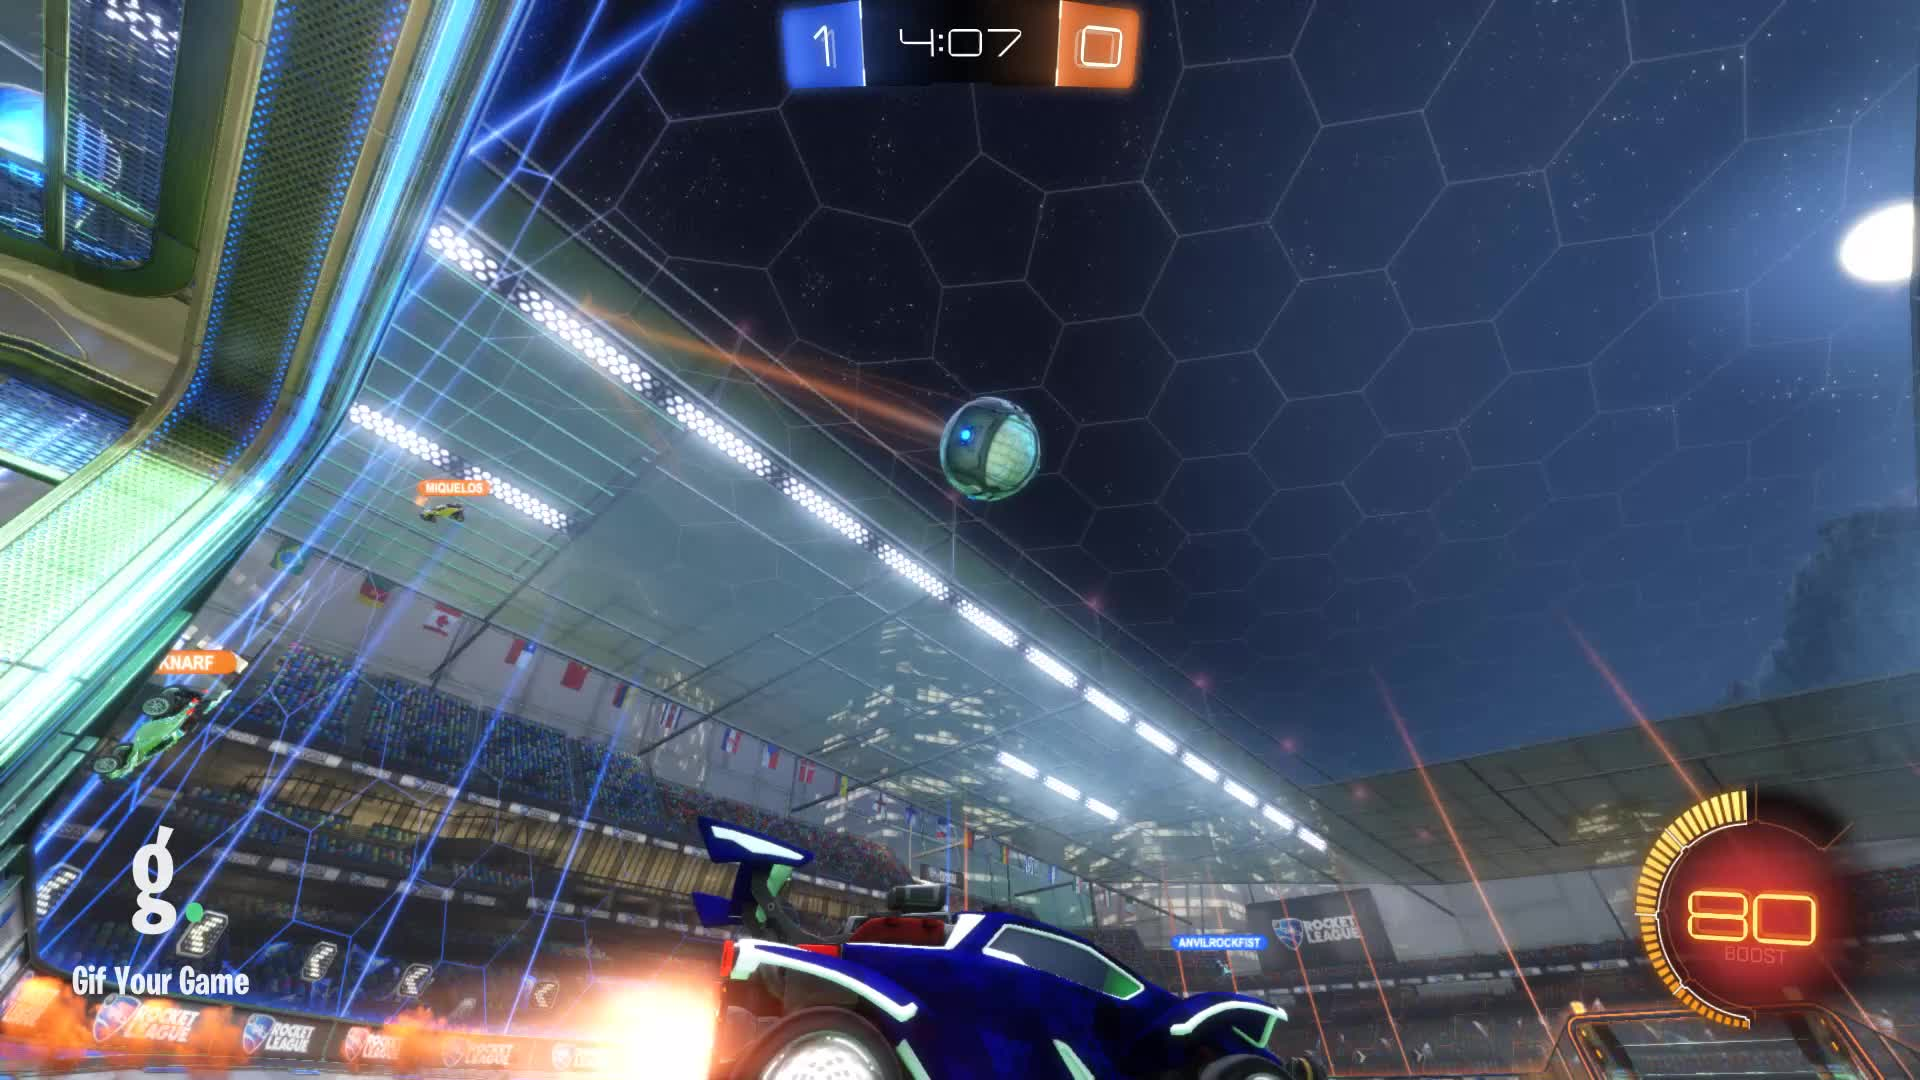 Gif Your Game, GifYourGame, Goal, Horizon, Rocket League, RocketLeague, Goal 2: Horizon GIFs